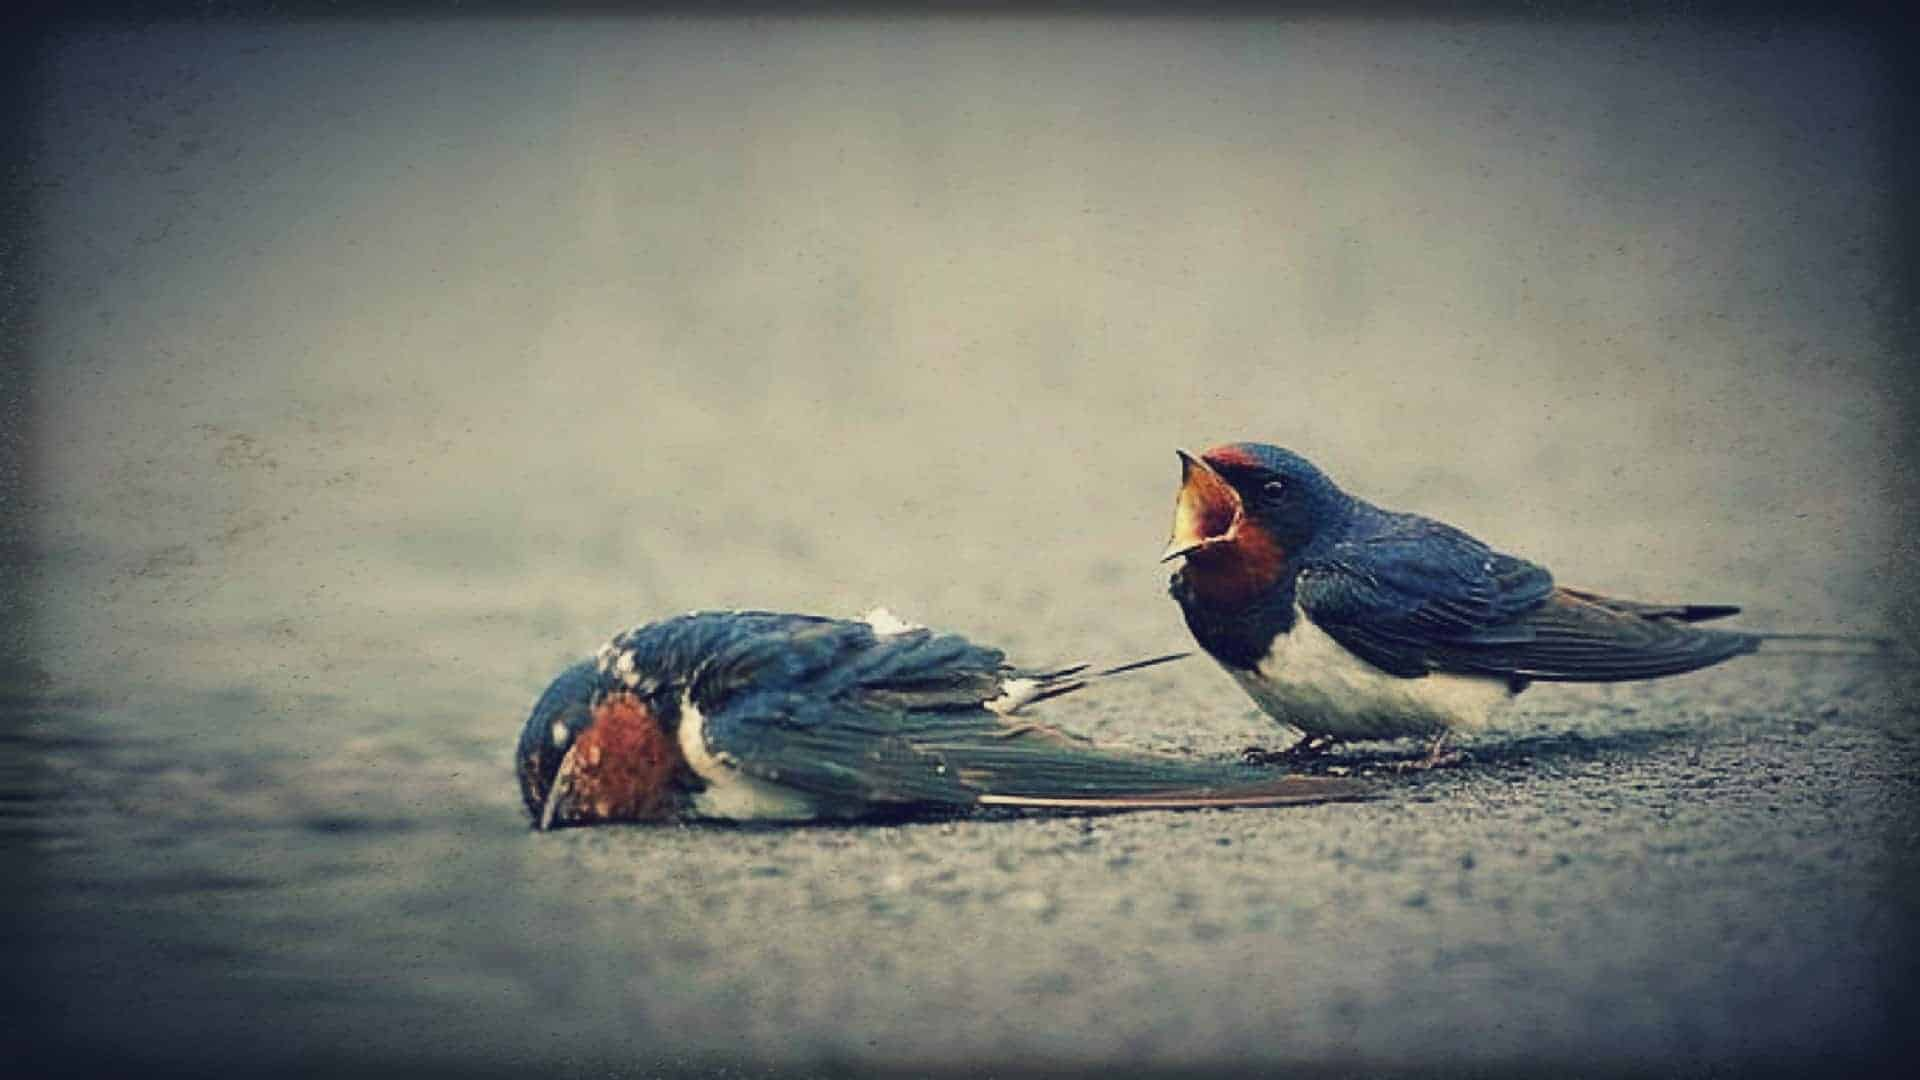 Two small birds are shown on the ground. One is dead. The other is standing over the body, its mouth open as if wailing in grief.